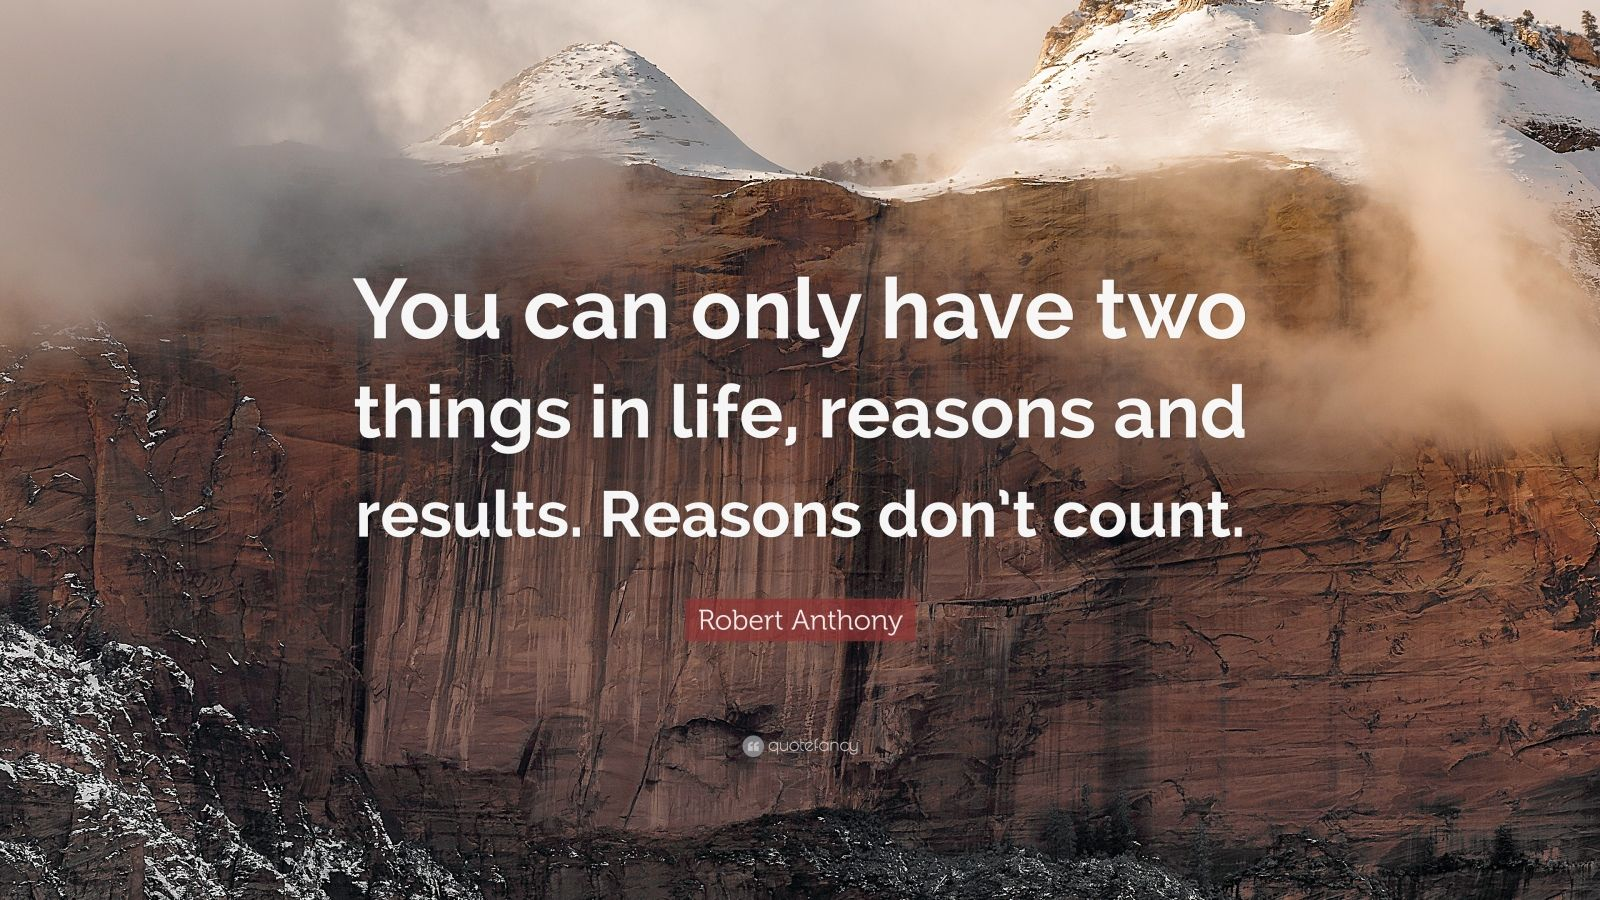 """Robert Anthony Quote: """"You can only have two things in life, reasons and results. Reasons don't count."""""""